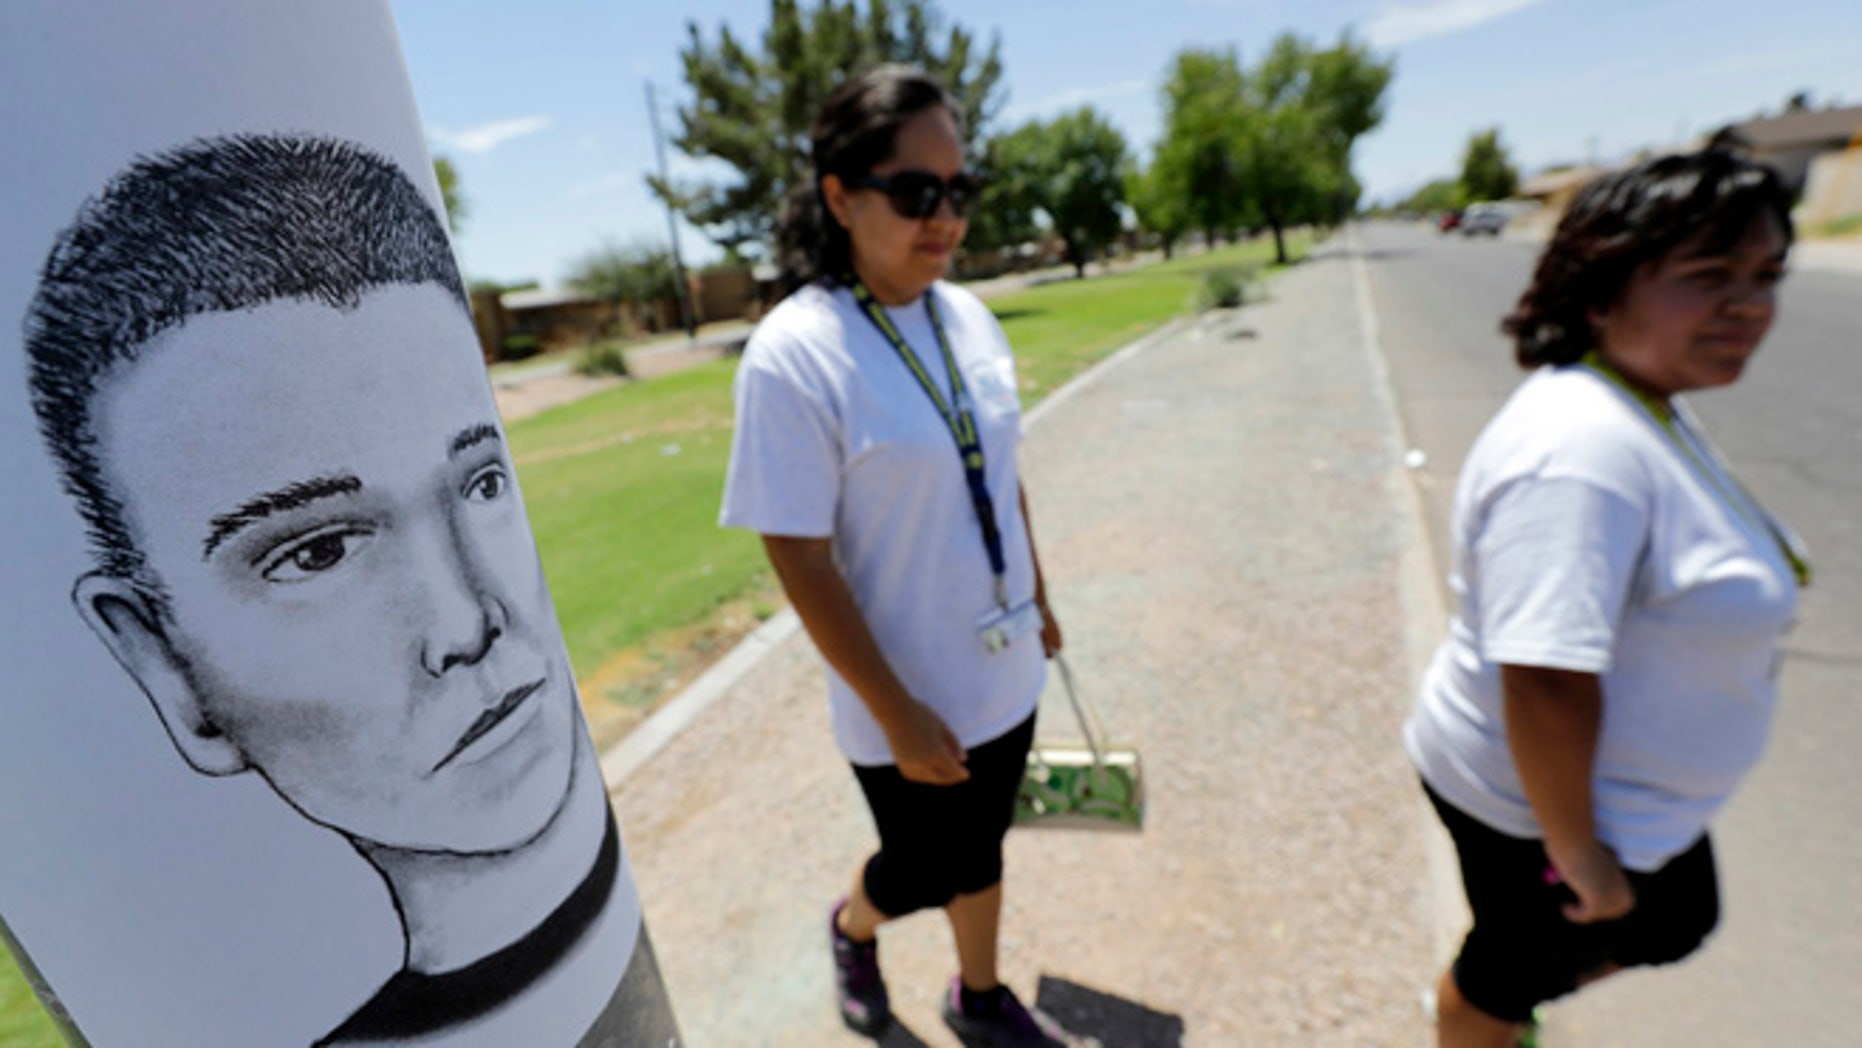 FILE--In this July 27, 2016, file photo, Phoenix neighborhood patrol officers Maribel Diaz Lopez, left, and Mario Ocampo walk Maryvale neighborhood streets in Phoenix, Ariz., to hand out an artist rendering of a suspected serial killer, as shown on the light pole, and block watch flyers. Authorities have released police reports on two of seven shooting deaths that investigators believed were carried out by a serial killer. The reports detail the shooting deaths of Manual Castro Garcia and Horacio de Jesus Pena, who died a week apart in June in the city's Maryvale neighborhood. (AP Photo/Matt York, file)